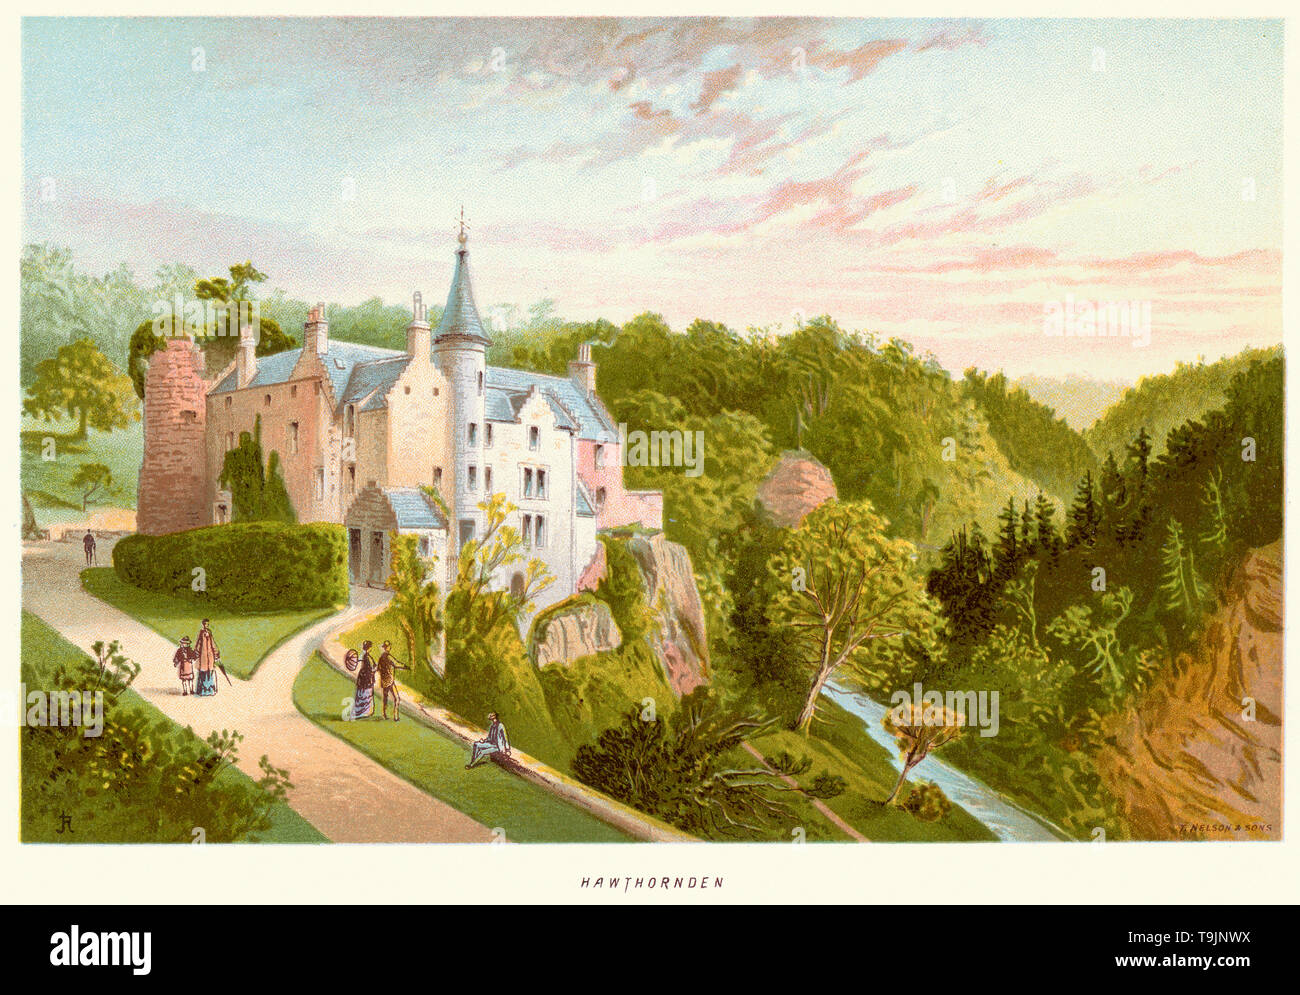 Vintage print of Hawthornden Castle located on the River North Esk in Midlothian, Scotland. Hawthornden was a property of the Abernethy family from the 13th century, and passed to the Douglases in the 14th century. The earliest parts of the castle date from the 15th century, and include a large three-storey tower, and the south curtain wall of a triangular courtyard. The castle was sacked twice by the Earl of Hertford in 1544 and 1547 during The Rough Wooing. Stock Photo